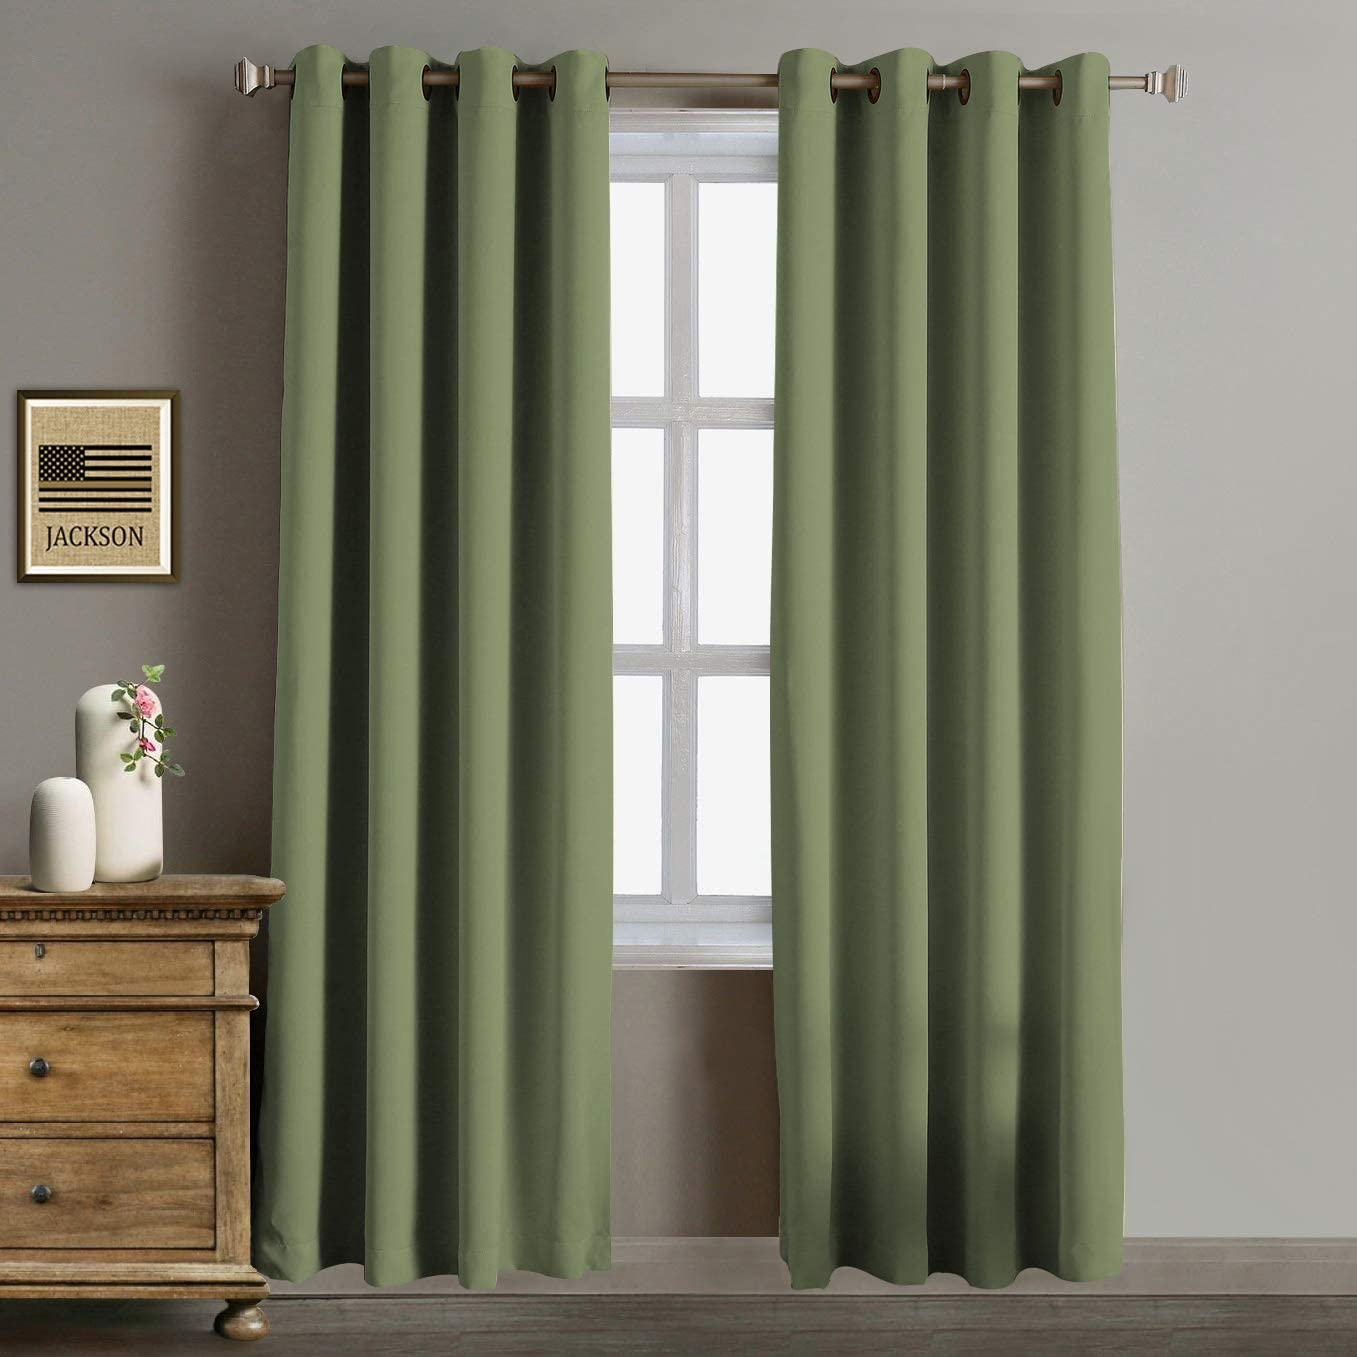 Rose Home Fashion Blackout Curtains Thermal Insulated Room Darknening Draperies 96 Inch Blackout Window Curtain Panels, 2 Pieces Blackout Curtains for Bedroom Living Room, W52 x L96, Olive